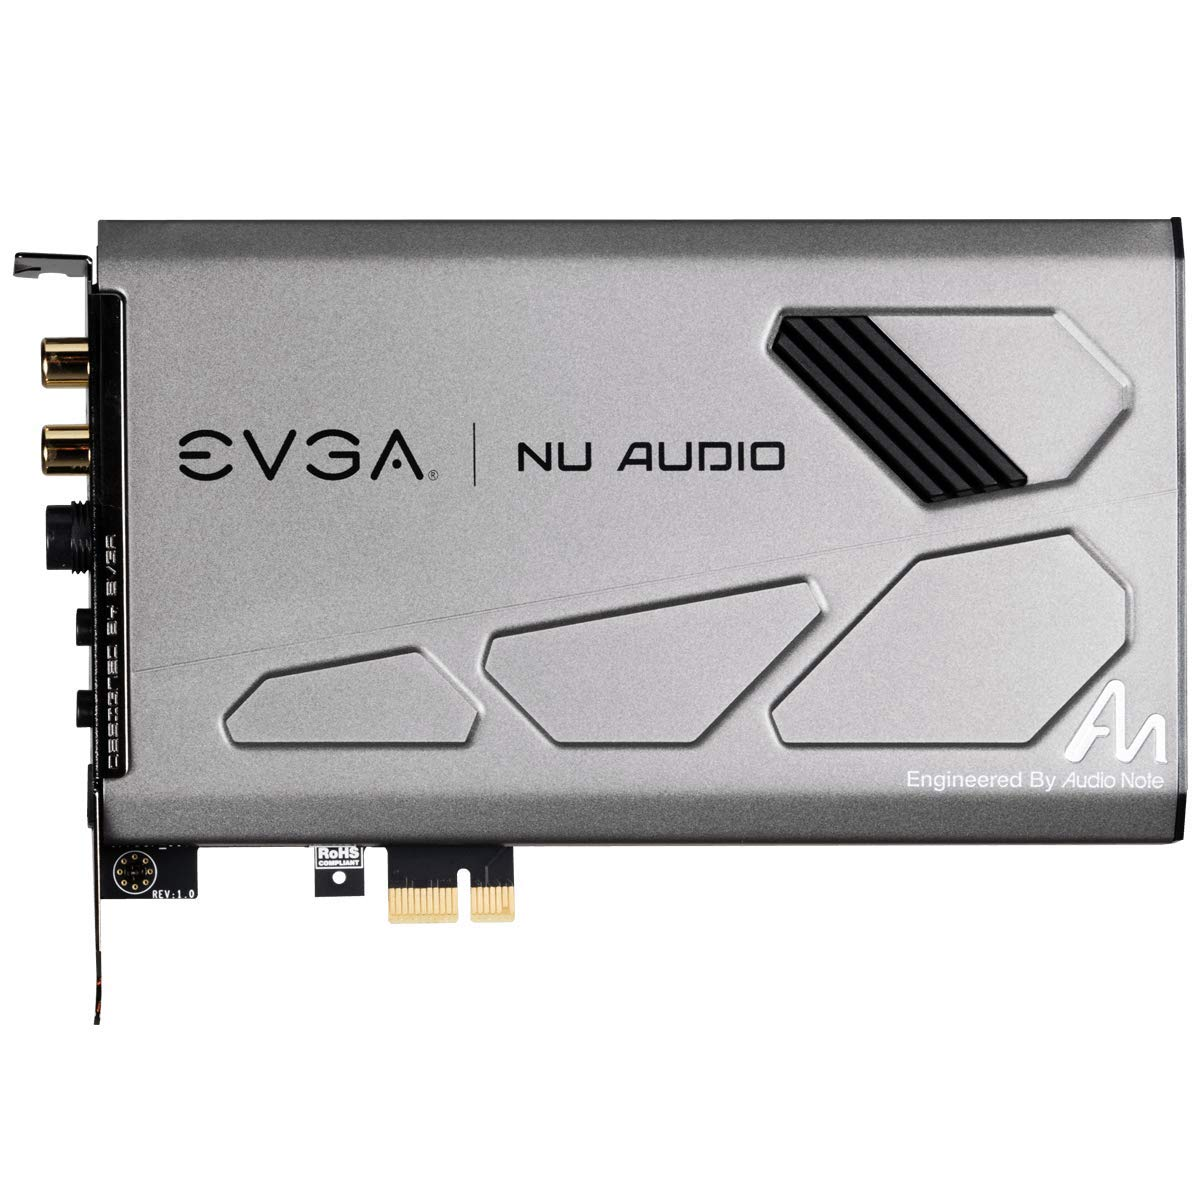 Sound Card For Gaming and Quility